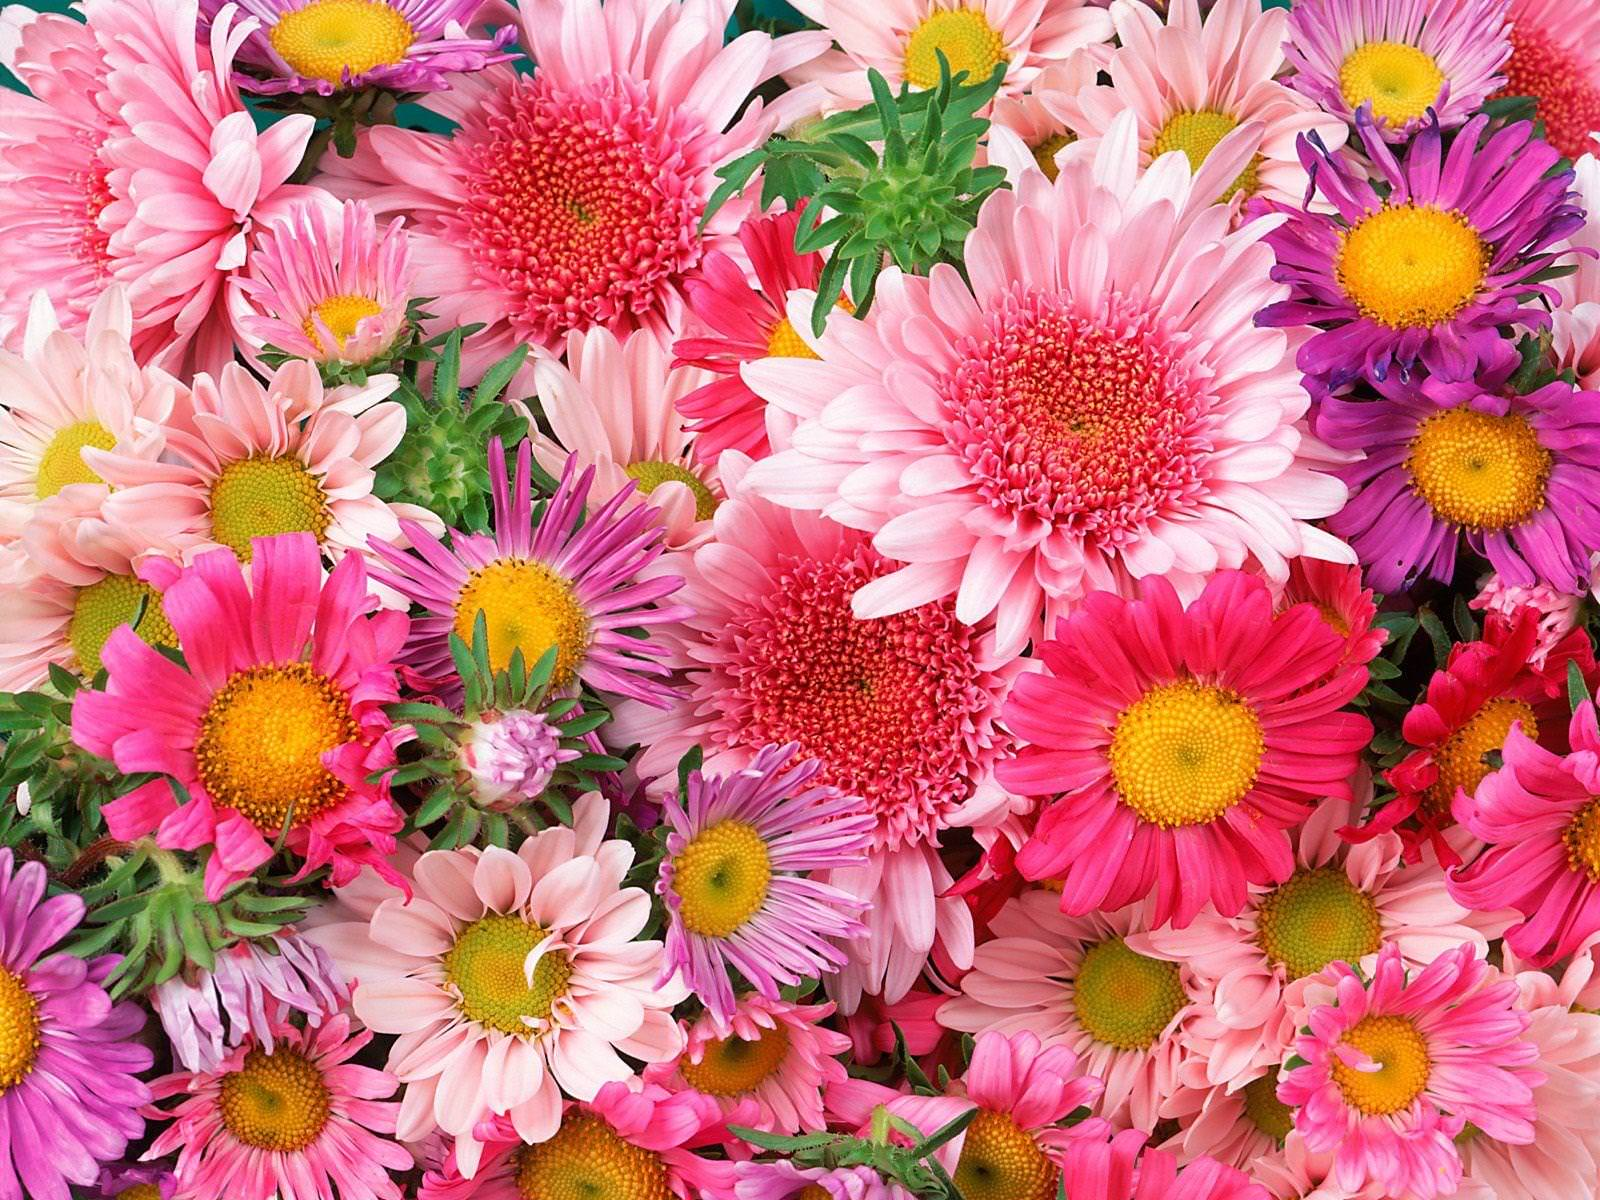 Free photo: Flower Background - Outdoor, Petal, Pretty ...